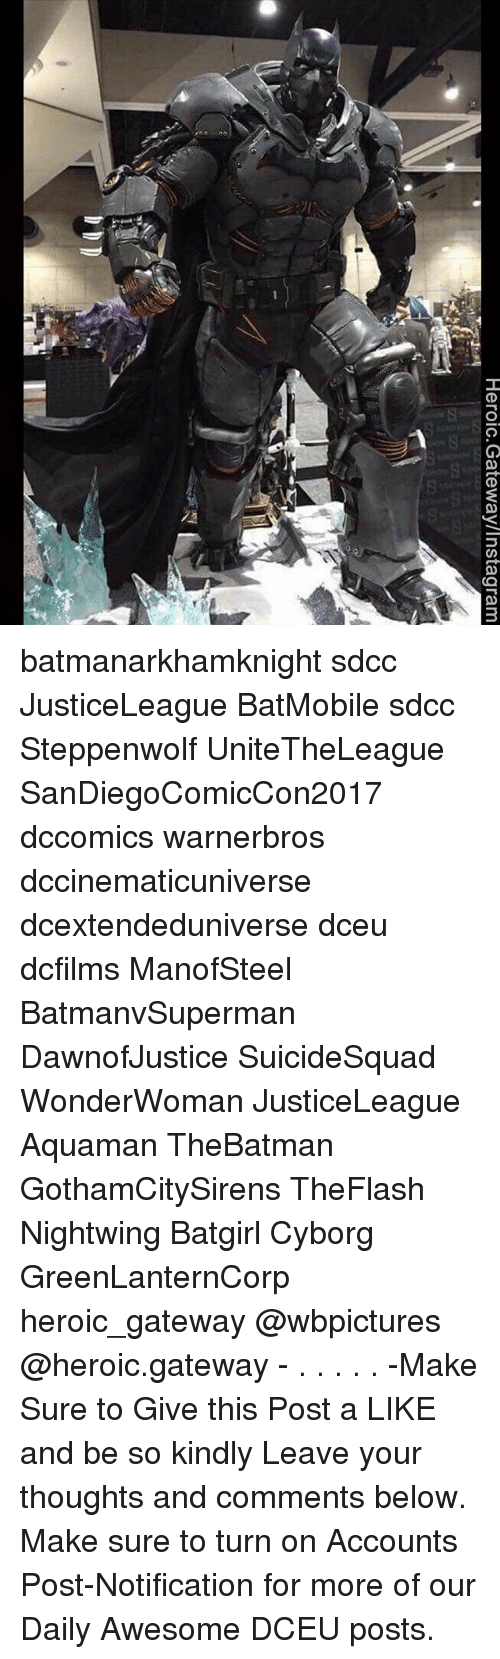 Instagram, Memes, and Gateway: Heroic.Gateway/Instagram batmanarkhamknight sdcc JusticeLeague BatMobile sdcc Steppenwolf UniteTheLeague SanDiegoComicCon2017 dccomics warnerbros dccinematicuniverse dcextendeduniverse dceu dcfilms ManofSteel BatmanvSuperman DawnofJustice SuicideSquad WonderWoman JusticeLeague Aquaman TheBatman GothamCitySirens TheFlash Nightwing Batgirl Cyborg GreenLanternCorp heroic_gateway @wbpictures @heroic.gateway - . . . . . -Make Sure to Give this Post a LIKE and be so kindly Leave your thoughts and comments below. Make sure to turn on Accounts Post-Notification for more of our Daily Awesome DCEU posts.